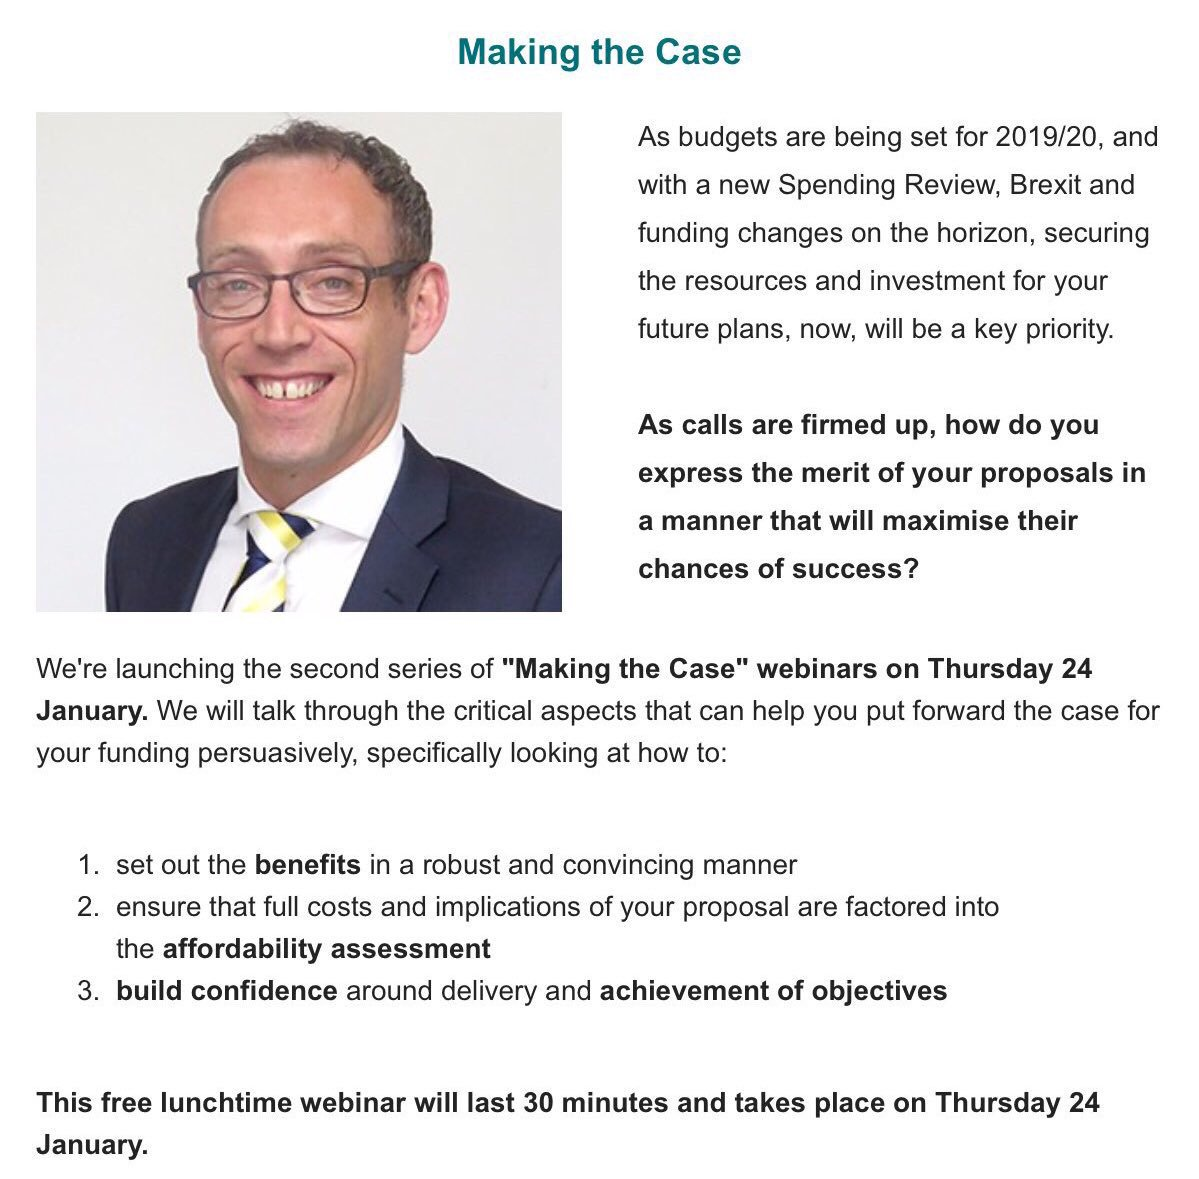 Great turn out for Making the Case webinar this afternoon - interesting discussion and questions raised. In case you missed it - we'll be posting a recording soon, or if you have any questions, contact Martin.Forbes@local.gov.uk